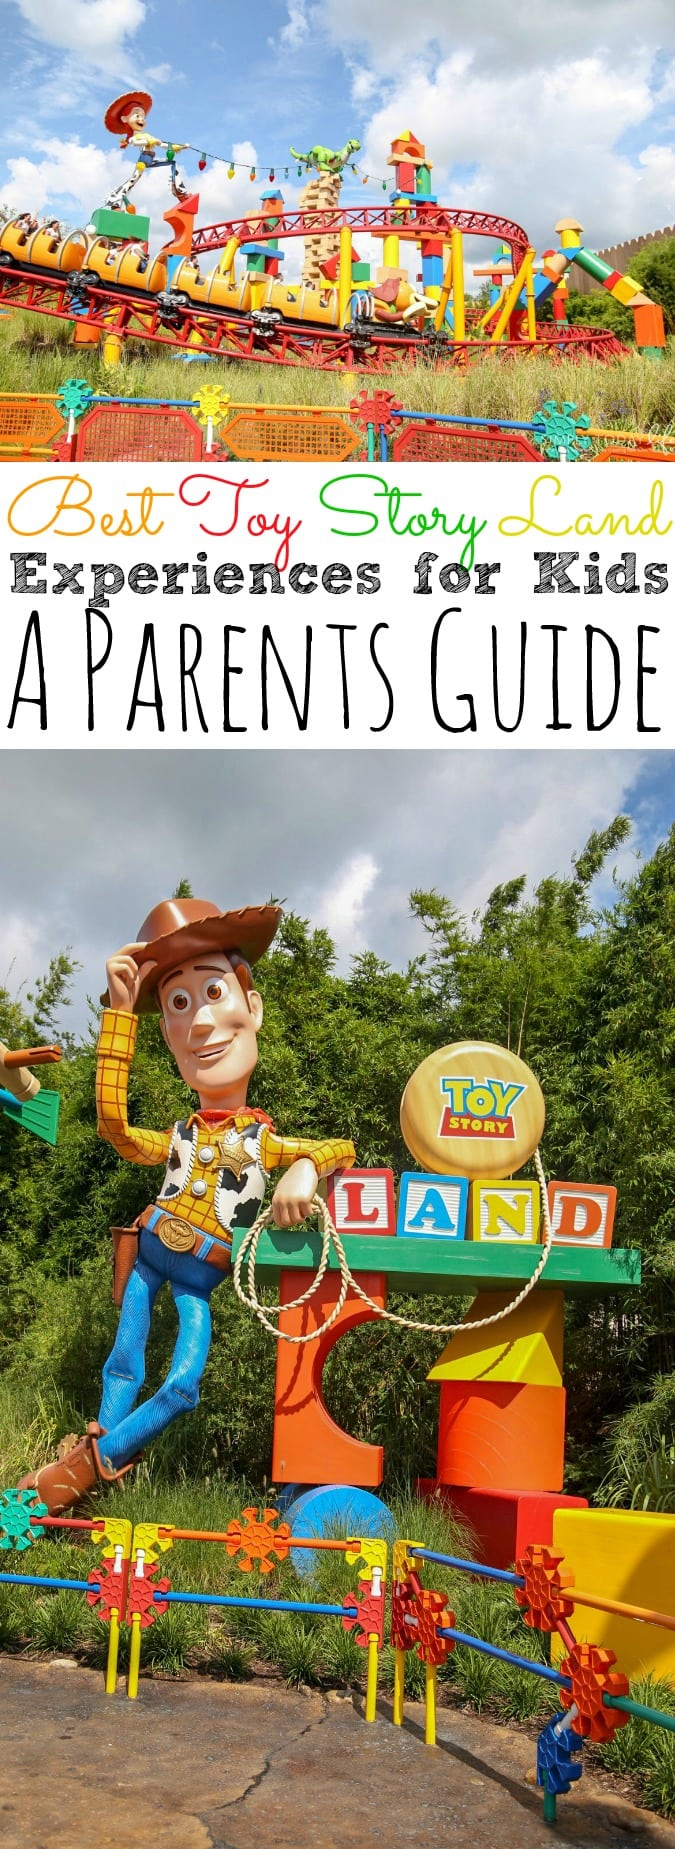 Best Toy Story Land Experiences For Kids | A Parents Guide